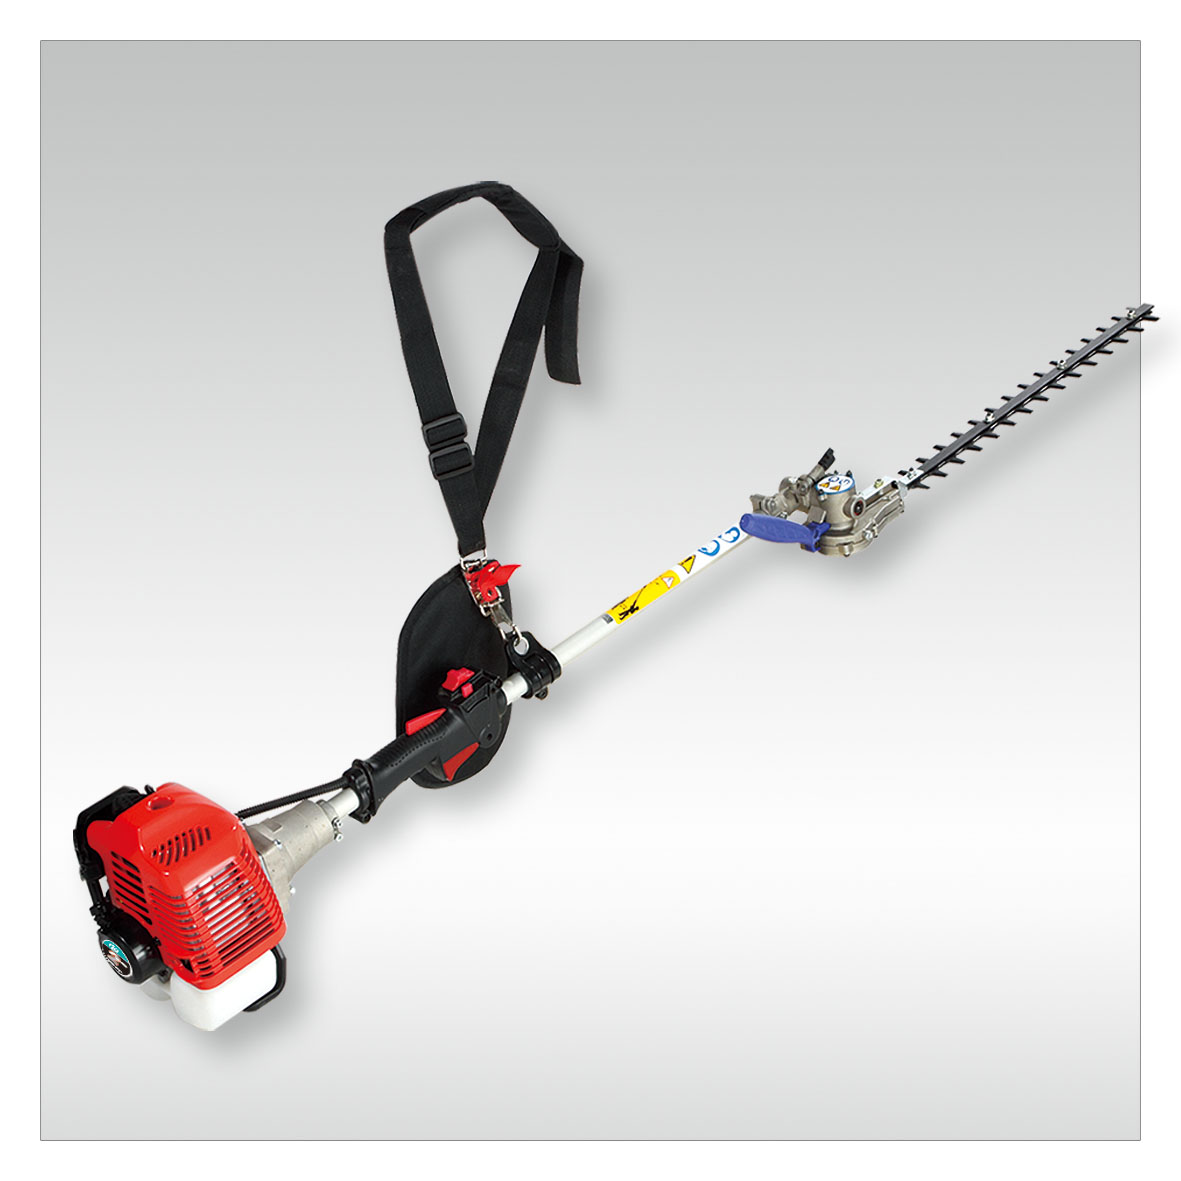 Gasoline Engine Telescopic Long Pole High Branch Hedge Trimmer GX-250M